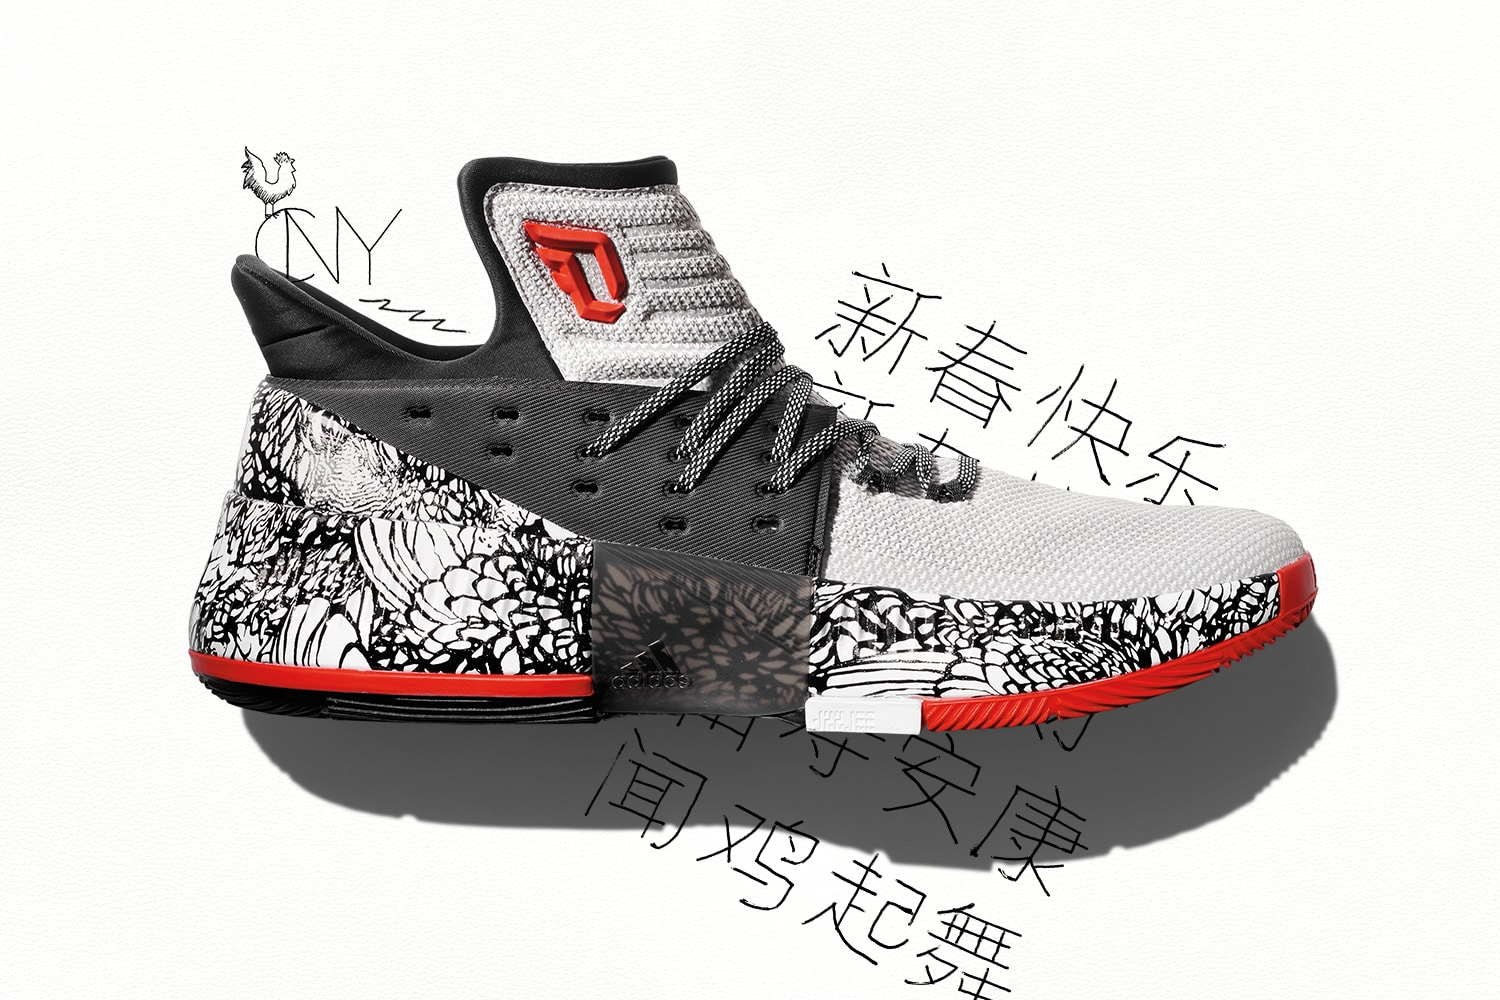 713862860c15 Adidas releases the first three colorways of the third iteration of Damian  Lillard s signature sneaker